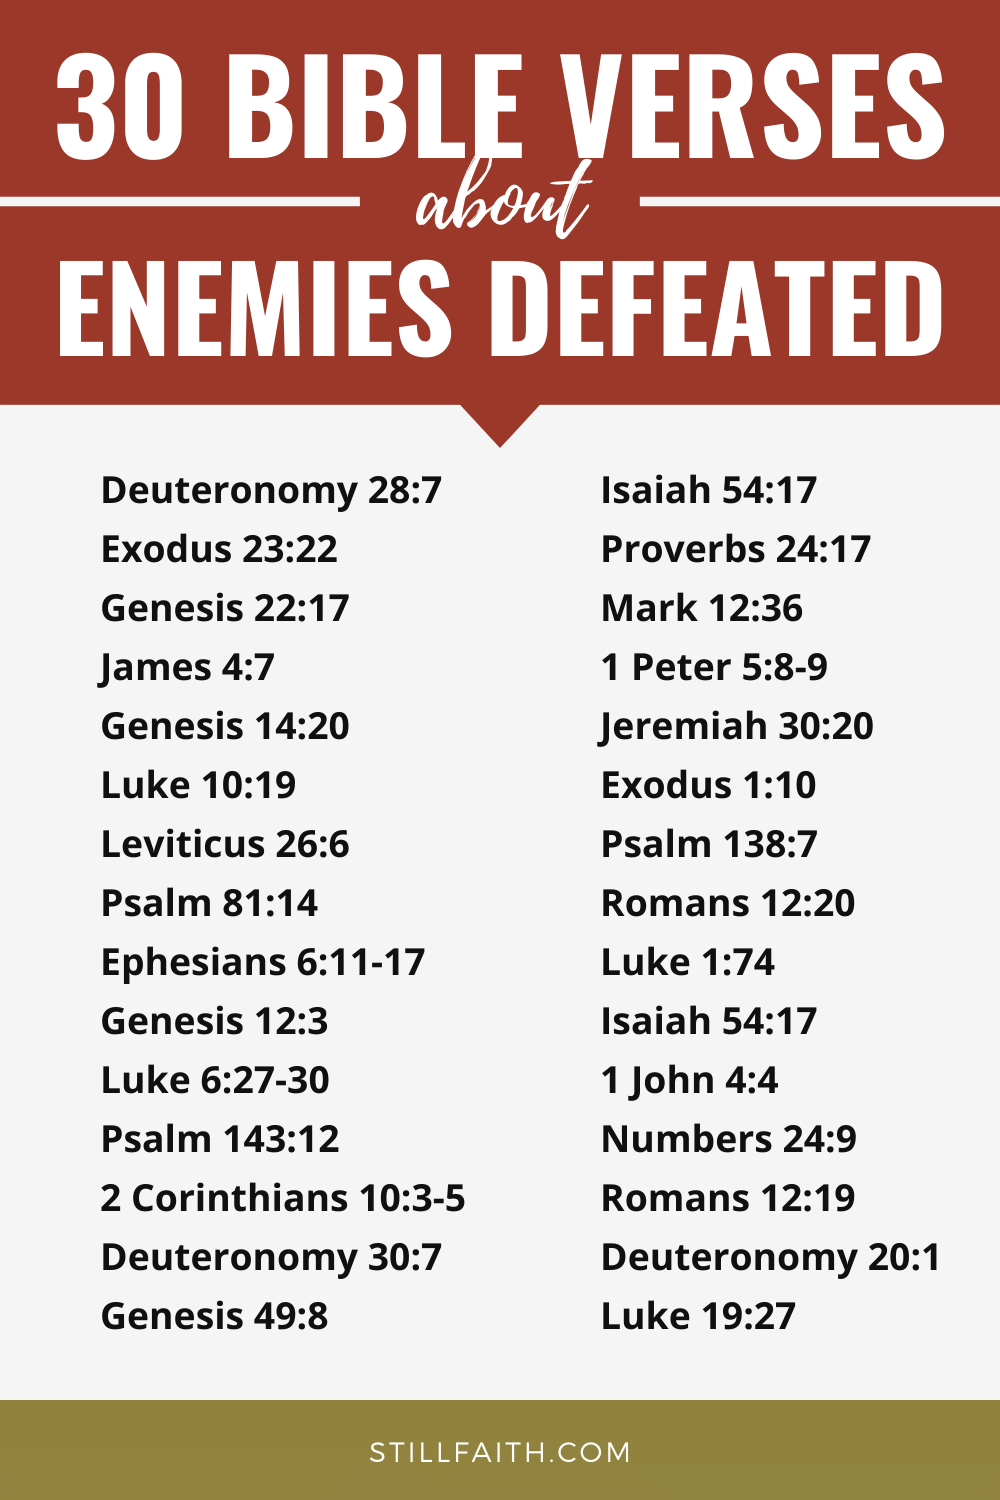 191 Bible Verses about Enemies Defeated